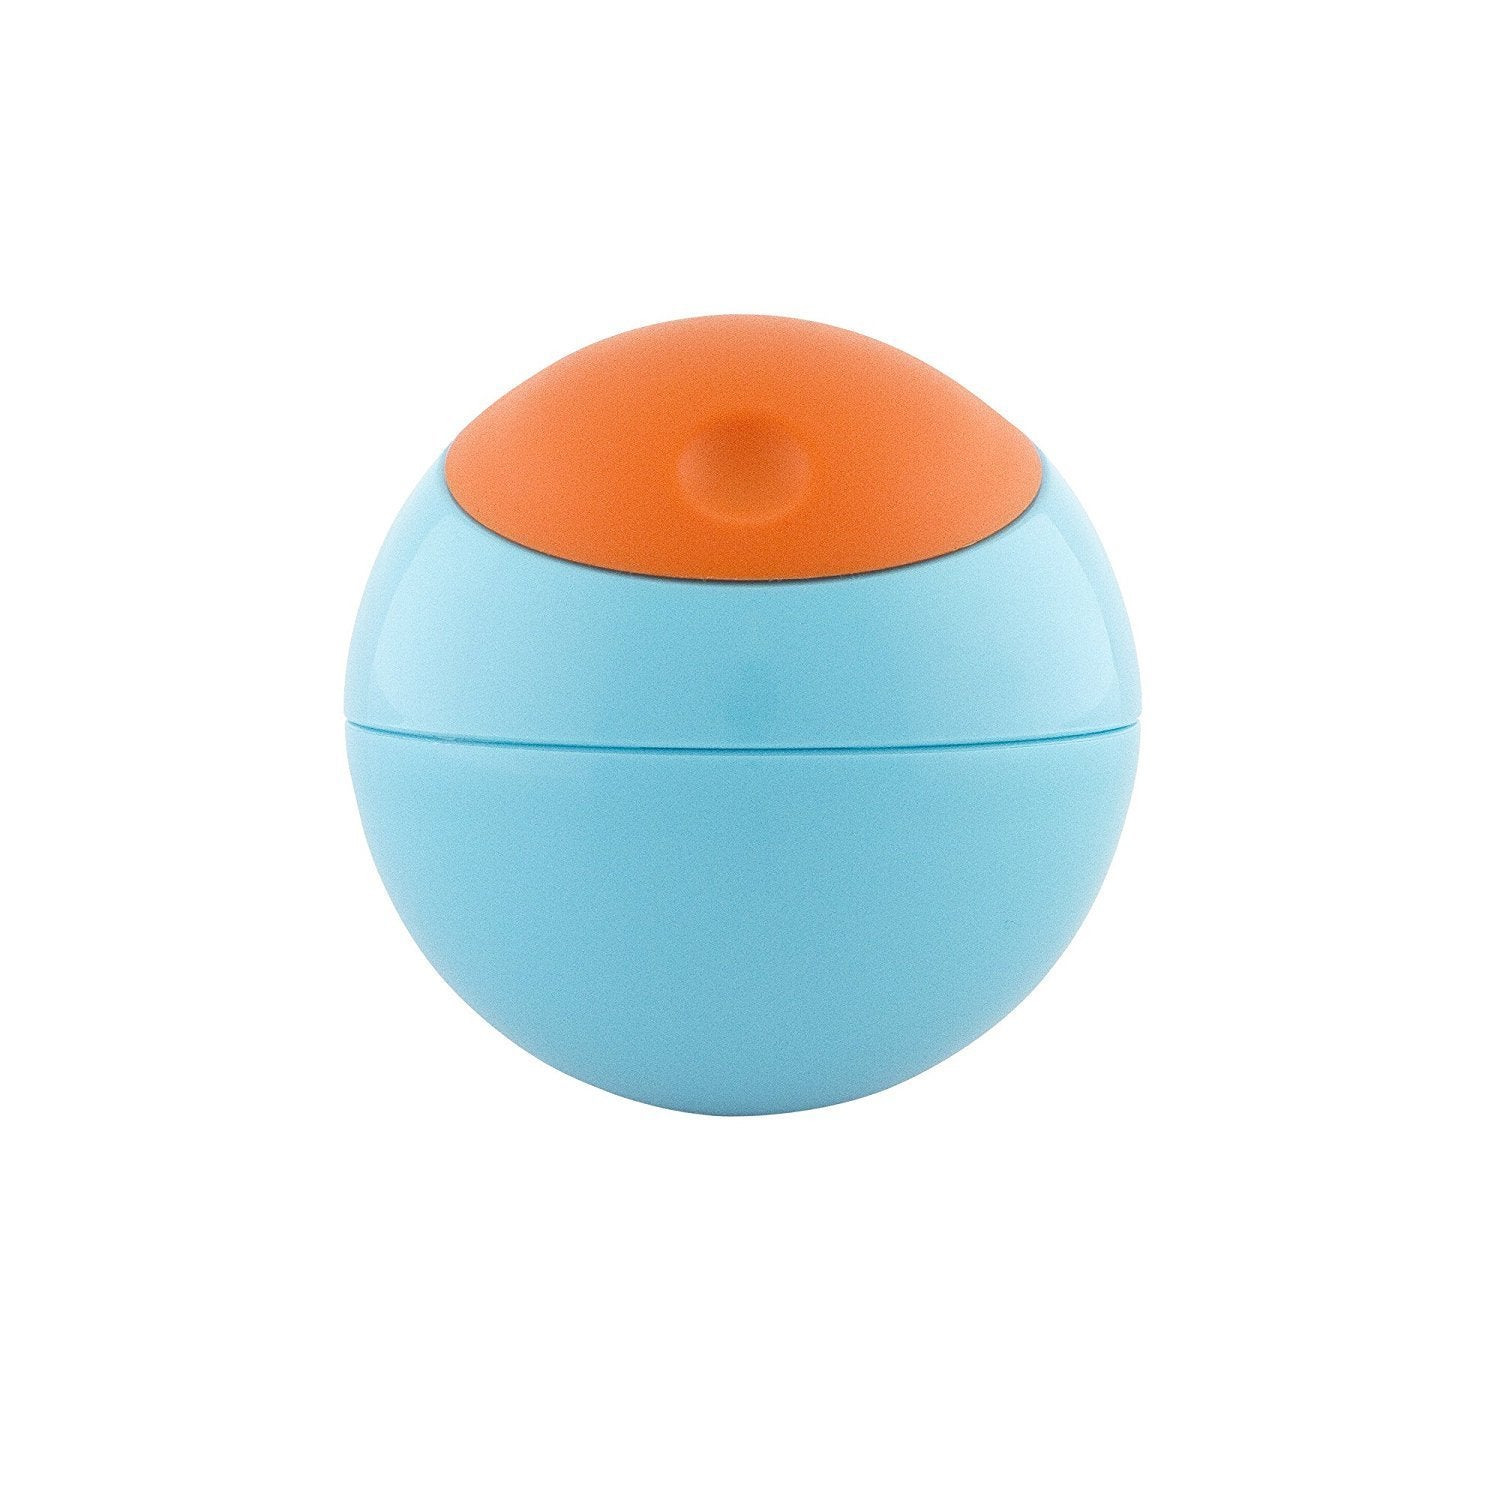 Boon Blue and Orange Plastic Snack Ball Container (Blue, ...